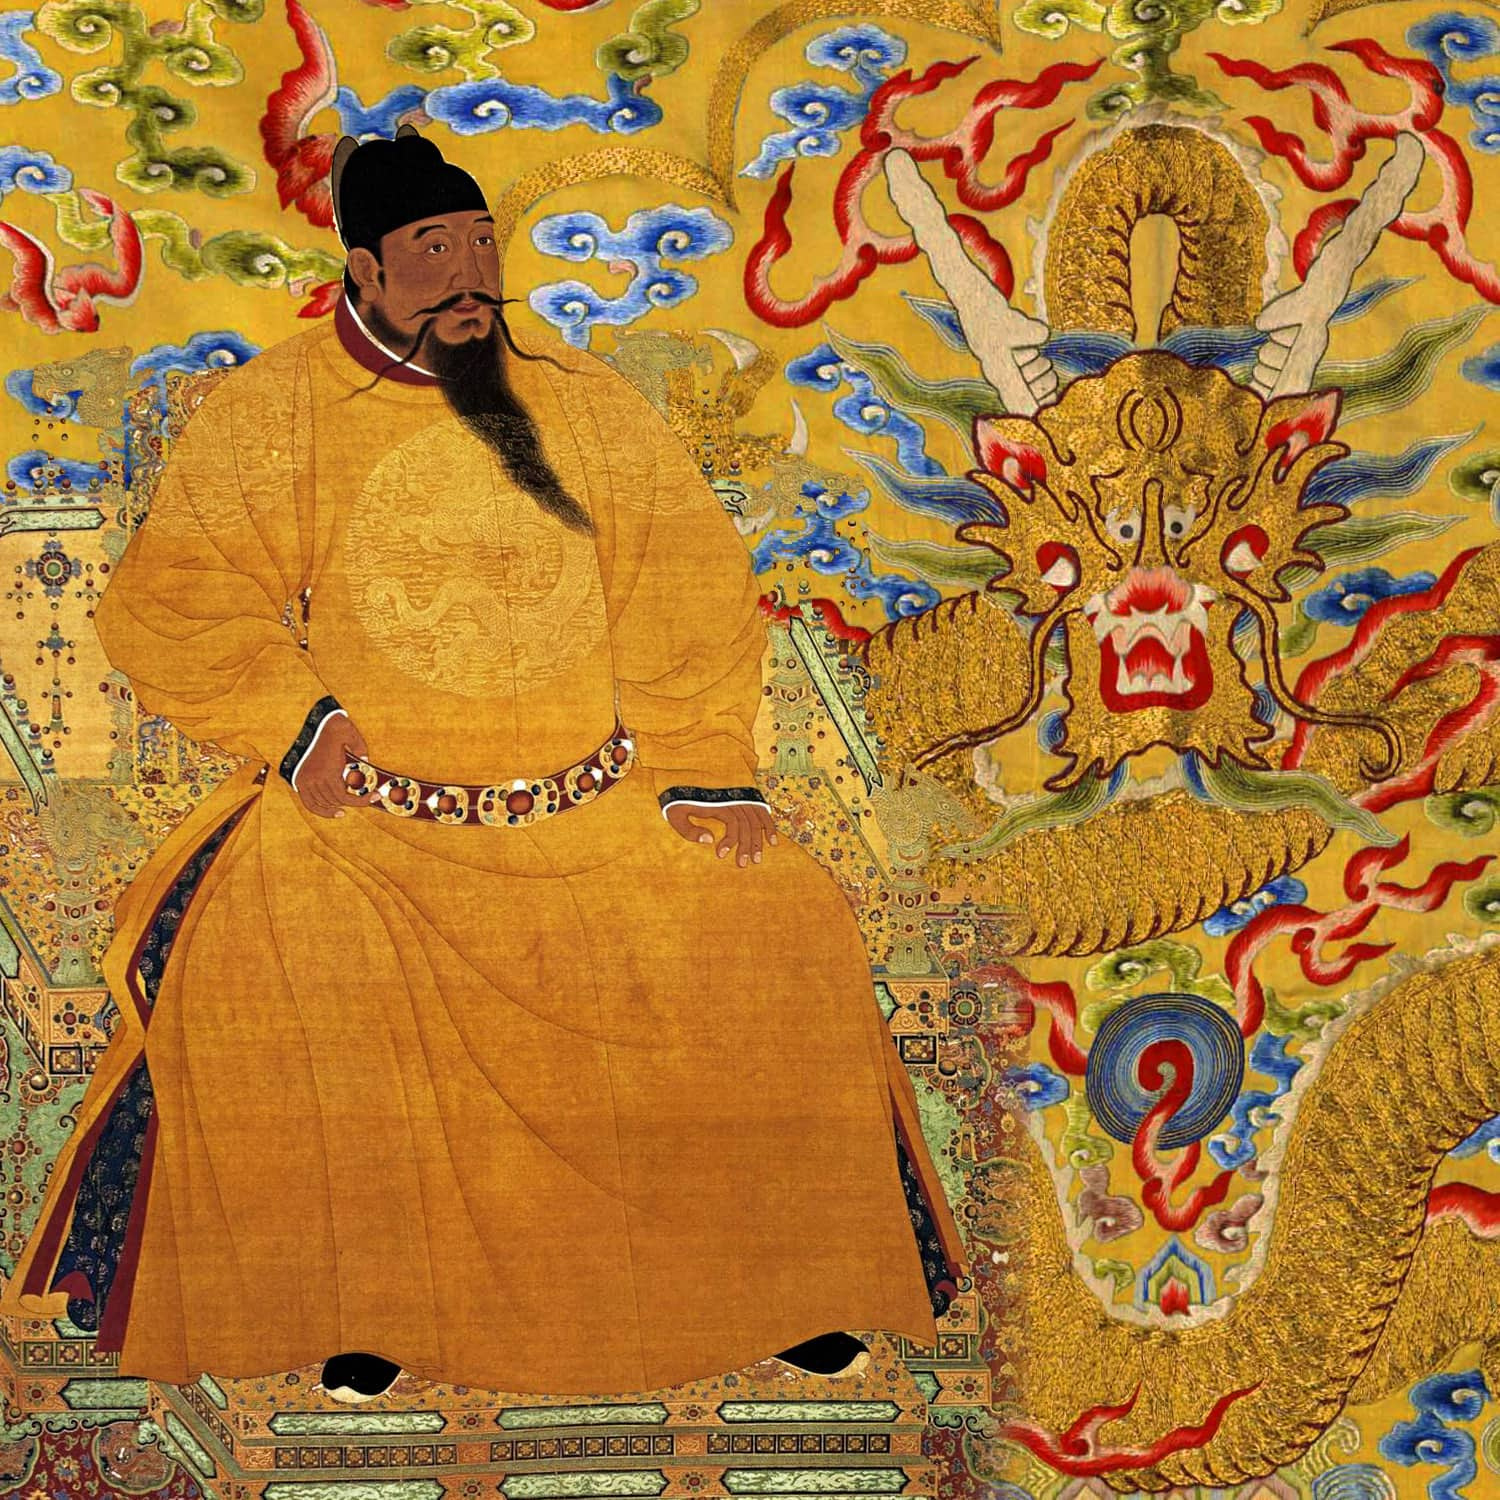 Chinese Yellow Emperor and his symbol Yellow Dragon